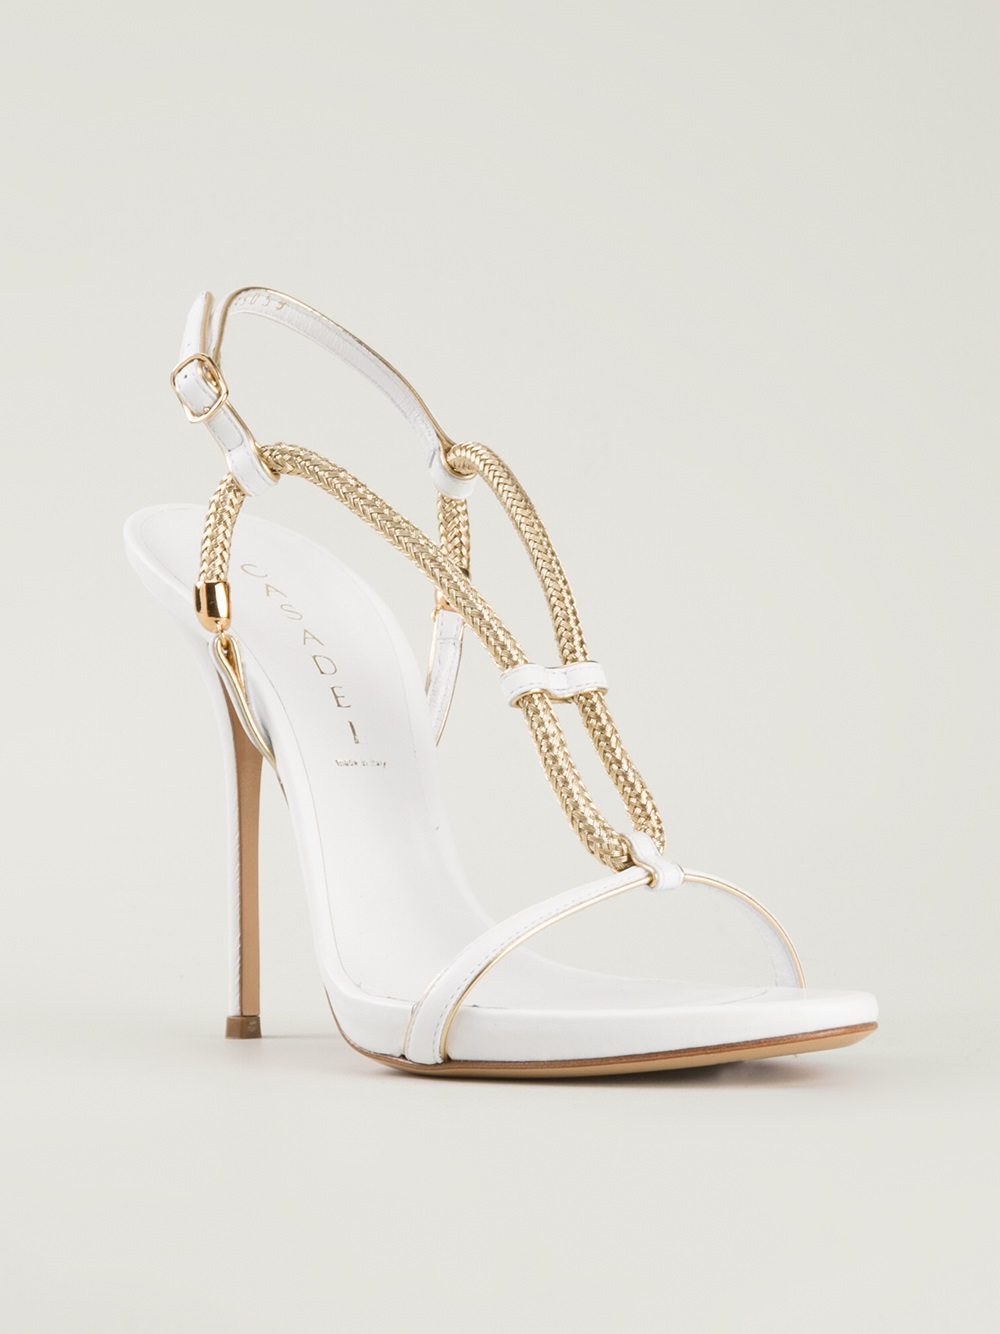 31024b440 Lyst - Casadei Strappy Chain Sandals in Metallic